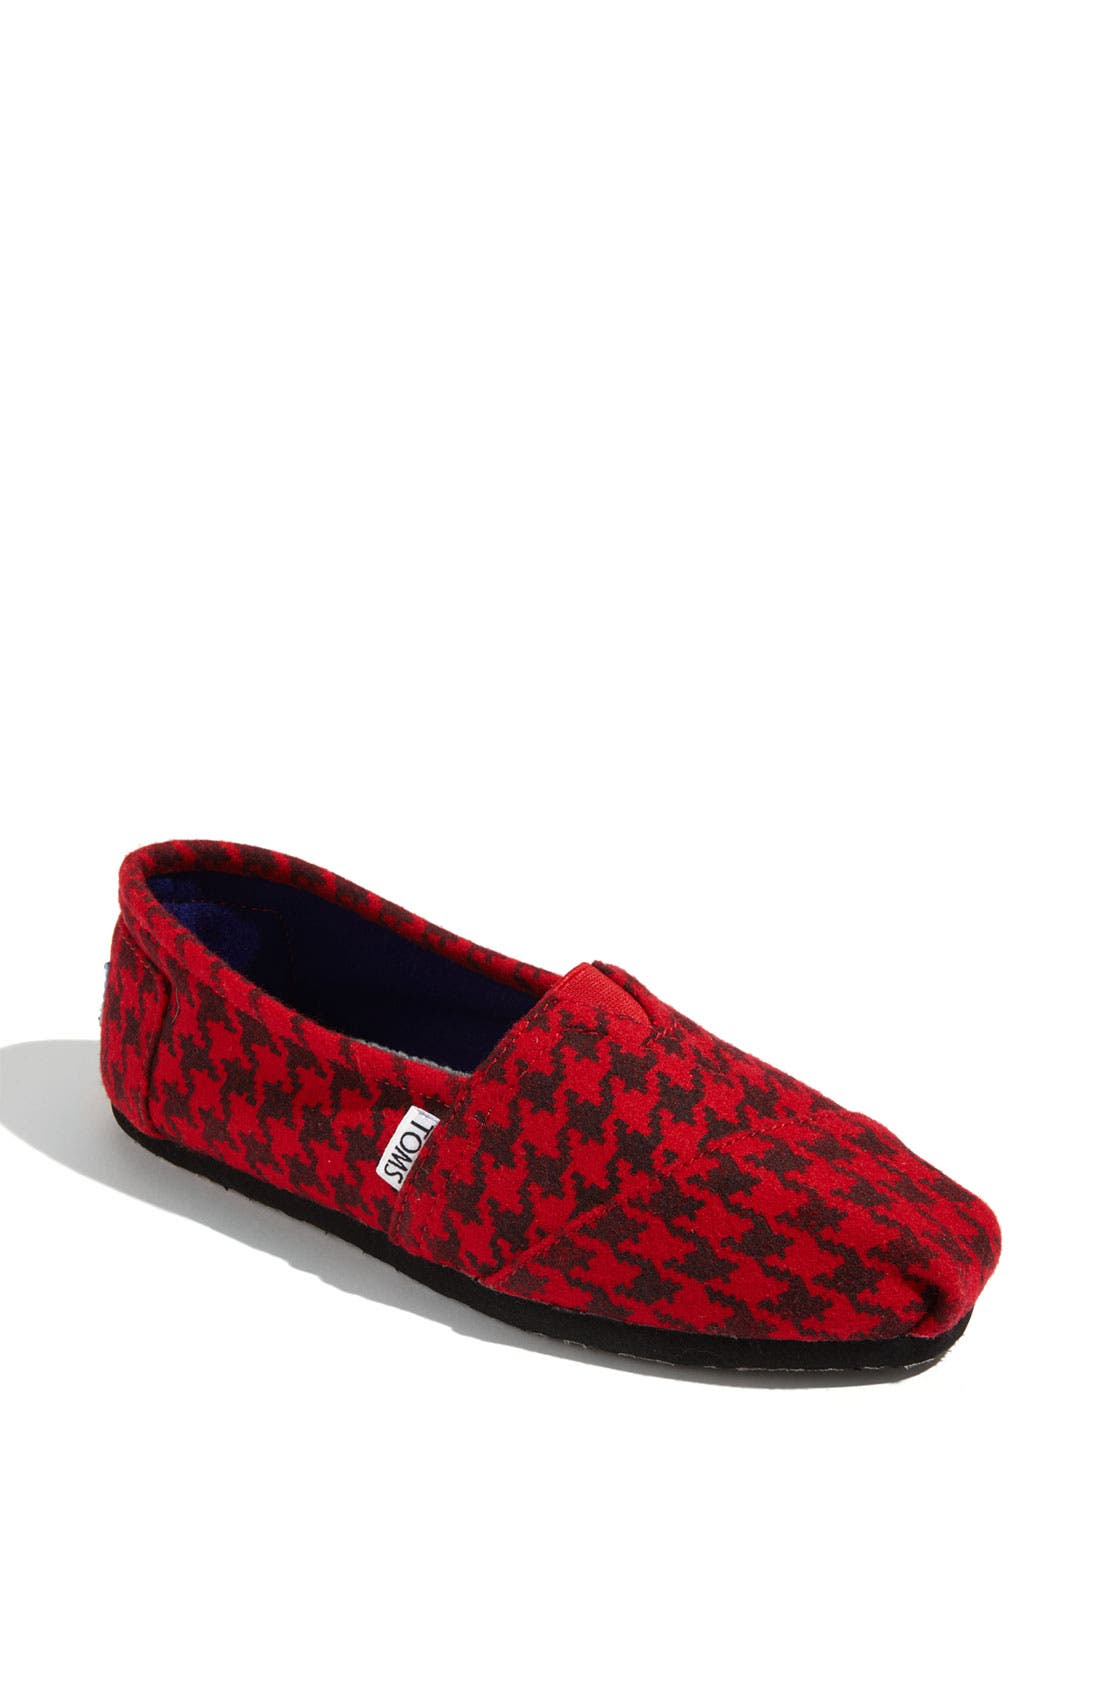 Alternate Image 1 Selected - TOMS 'Classic' Houndstooth Slip-On (Women)